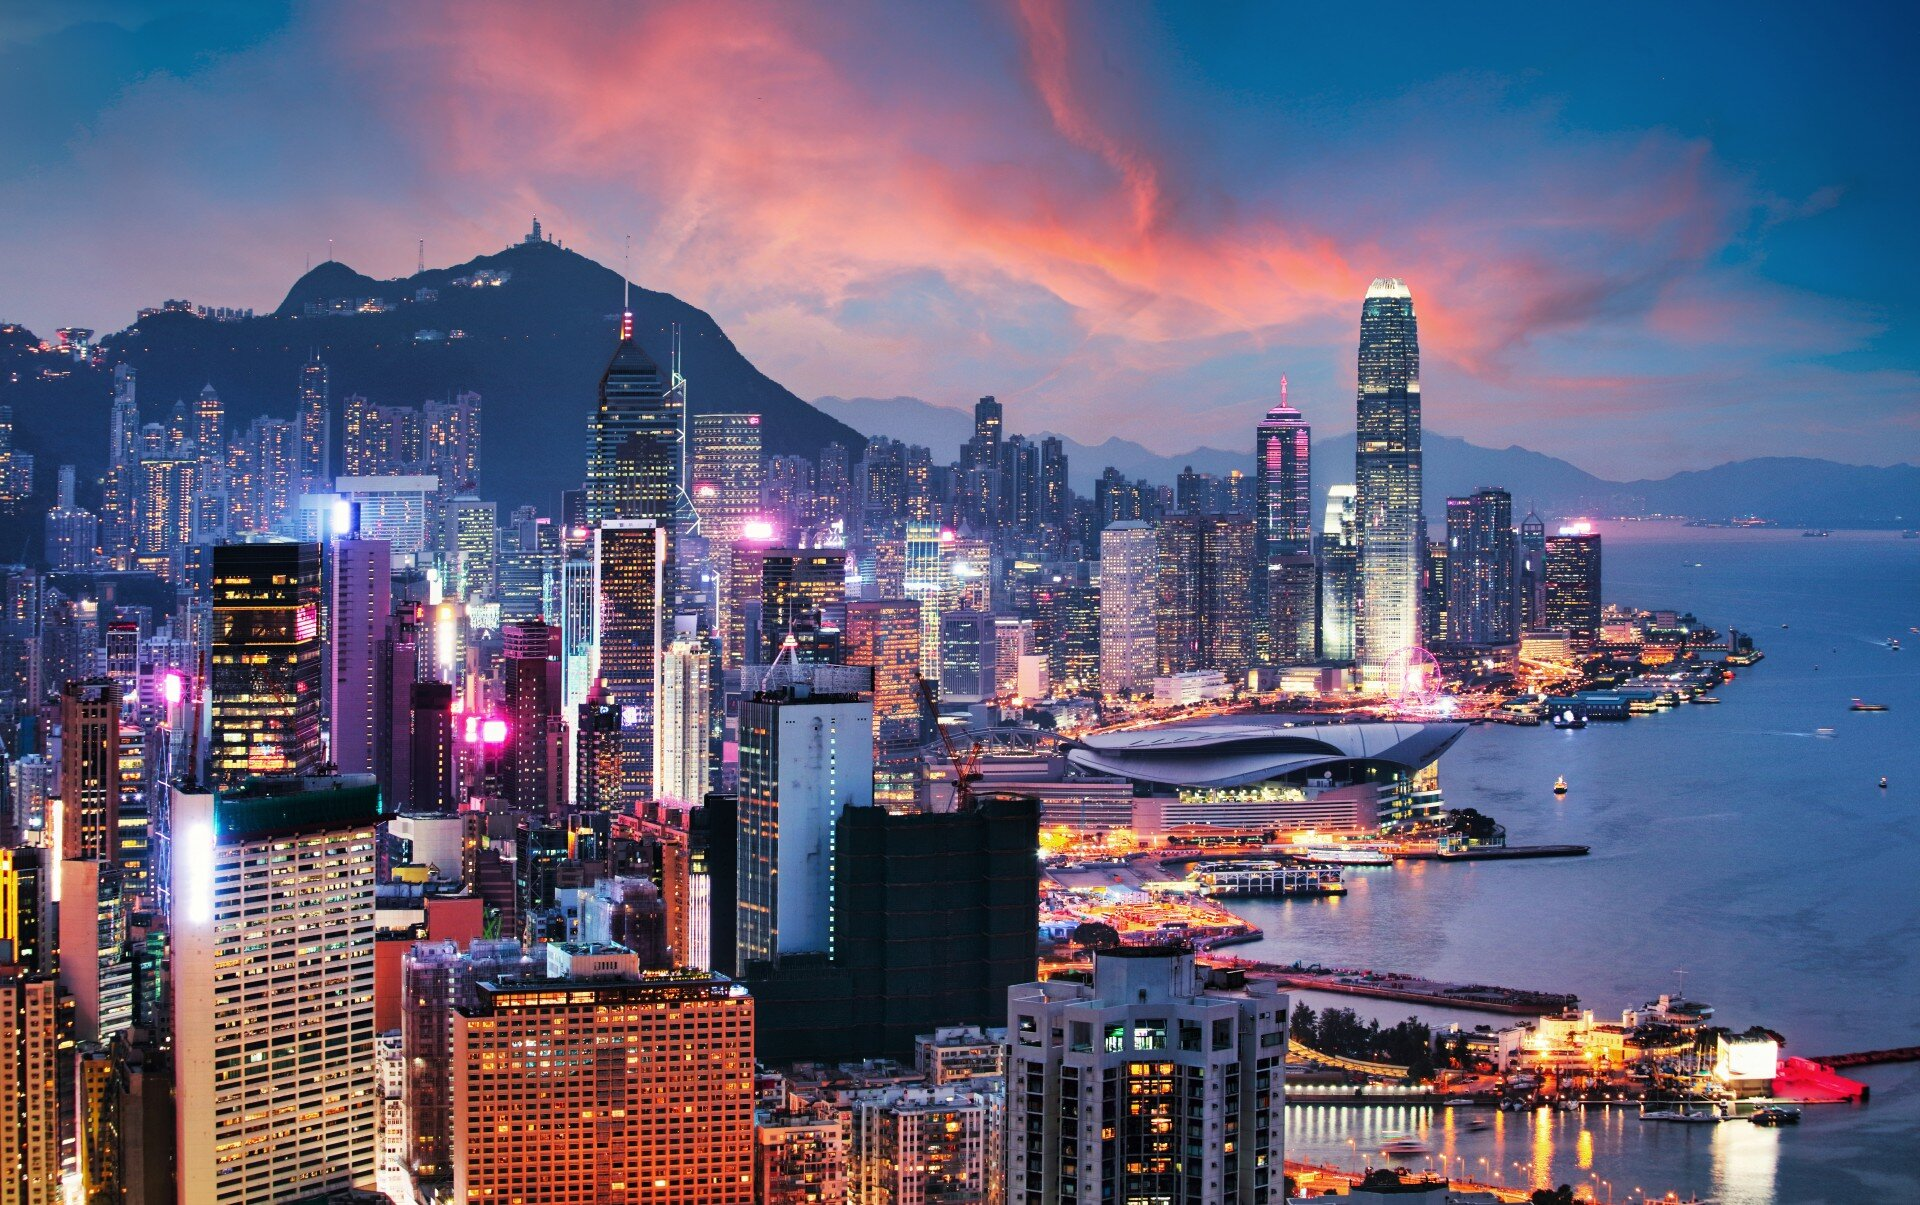 The decline, as well as the Chinese regulators' moves, have raised the concerns of foreign investors exodus from Hong Kong